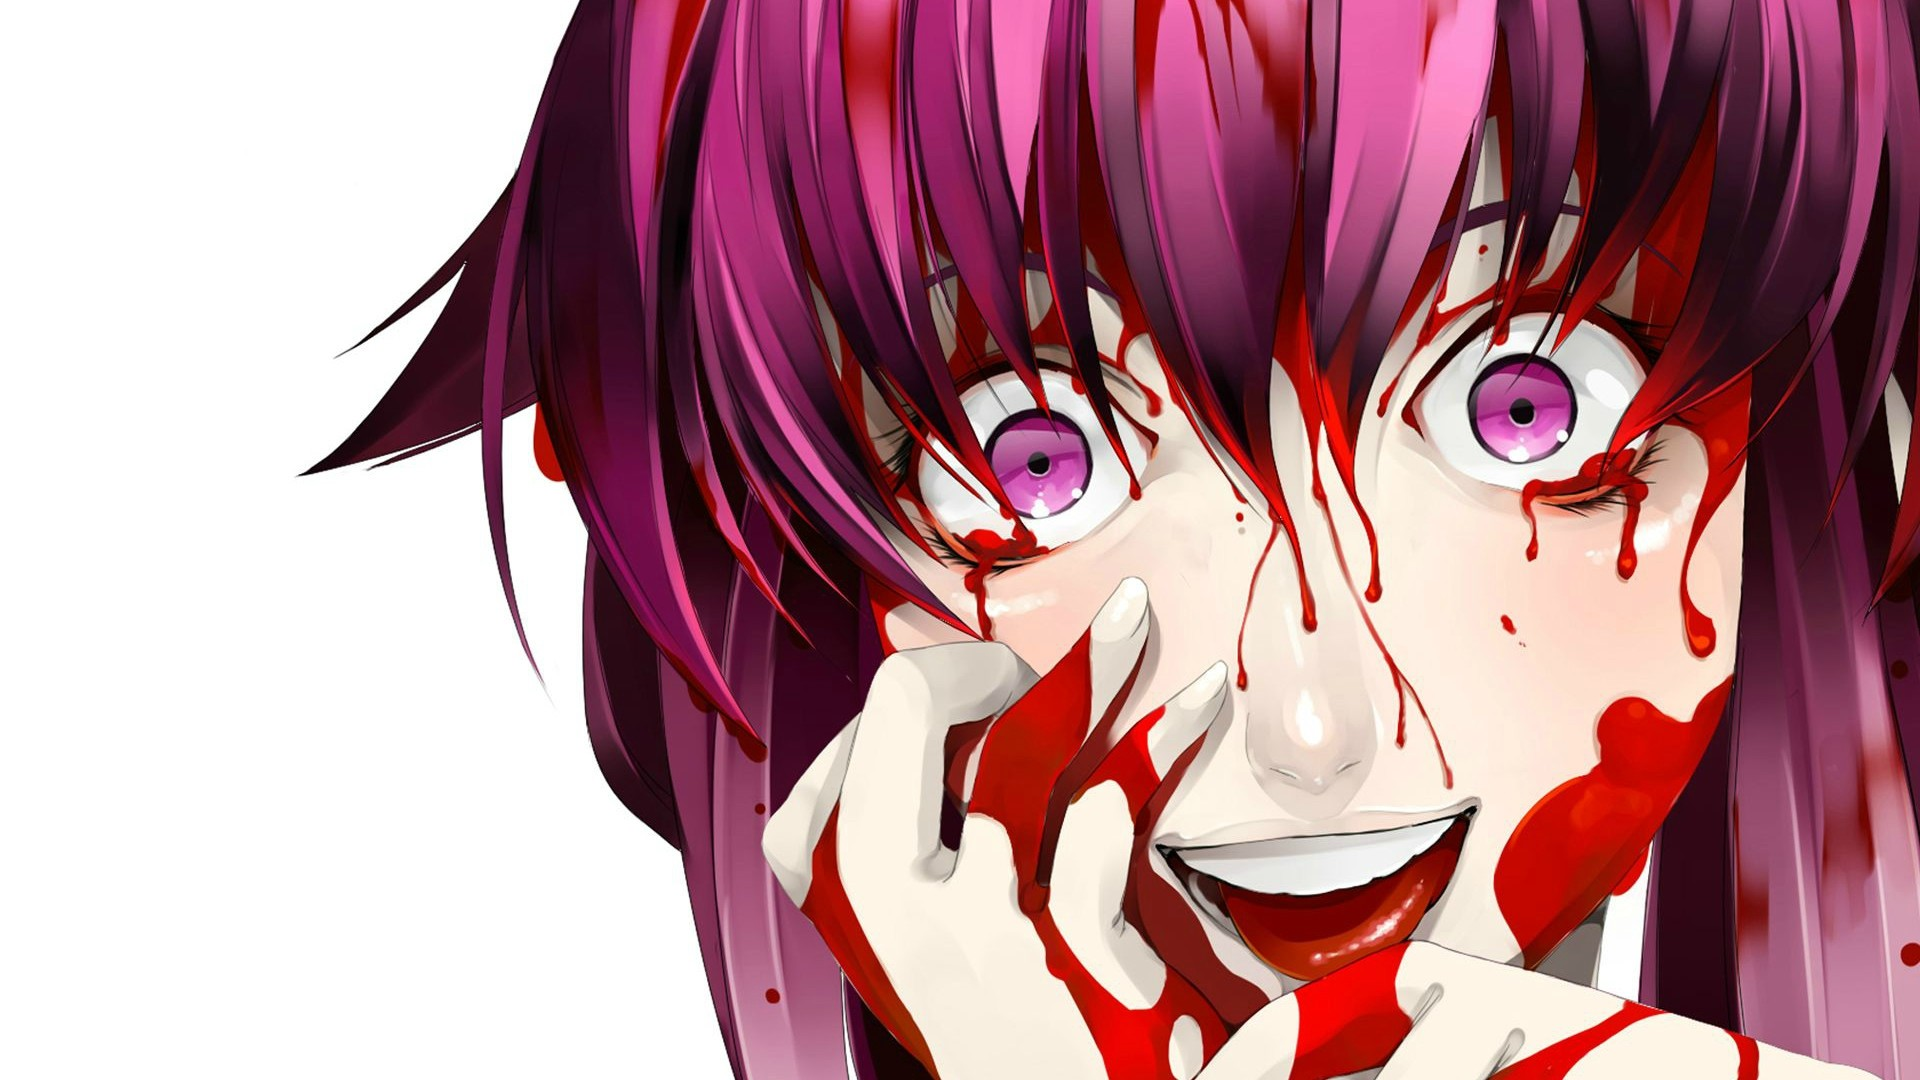 Gasai Yuno Wallpaper: Mirai Nikki HD Wallpaper